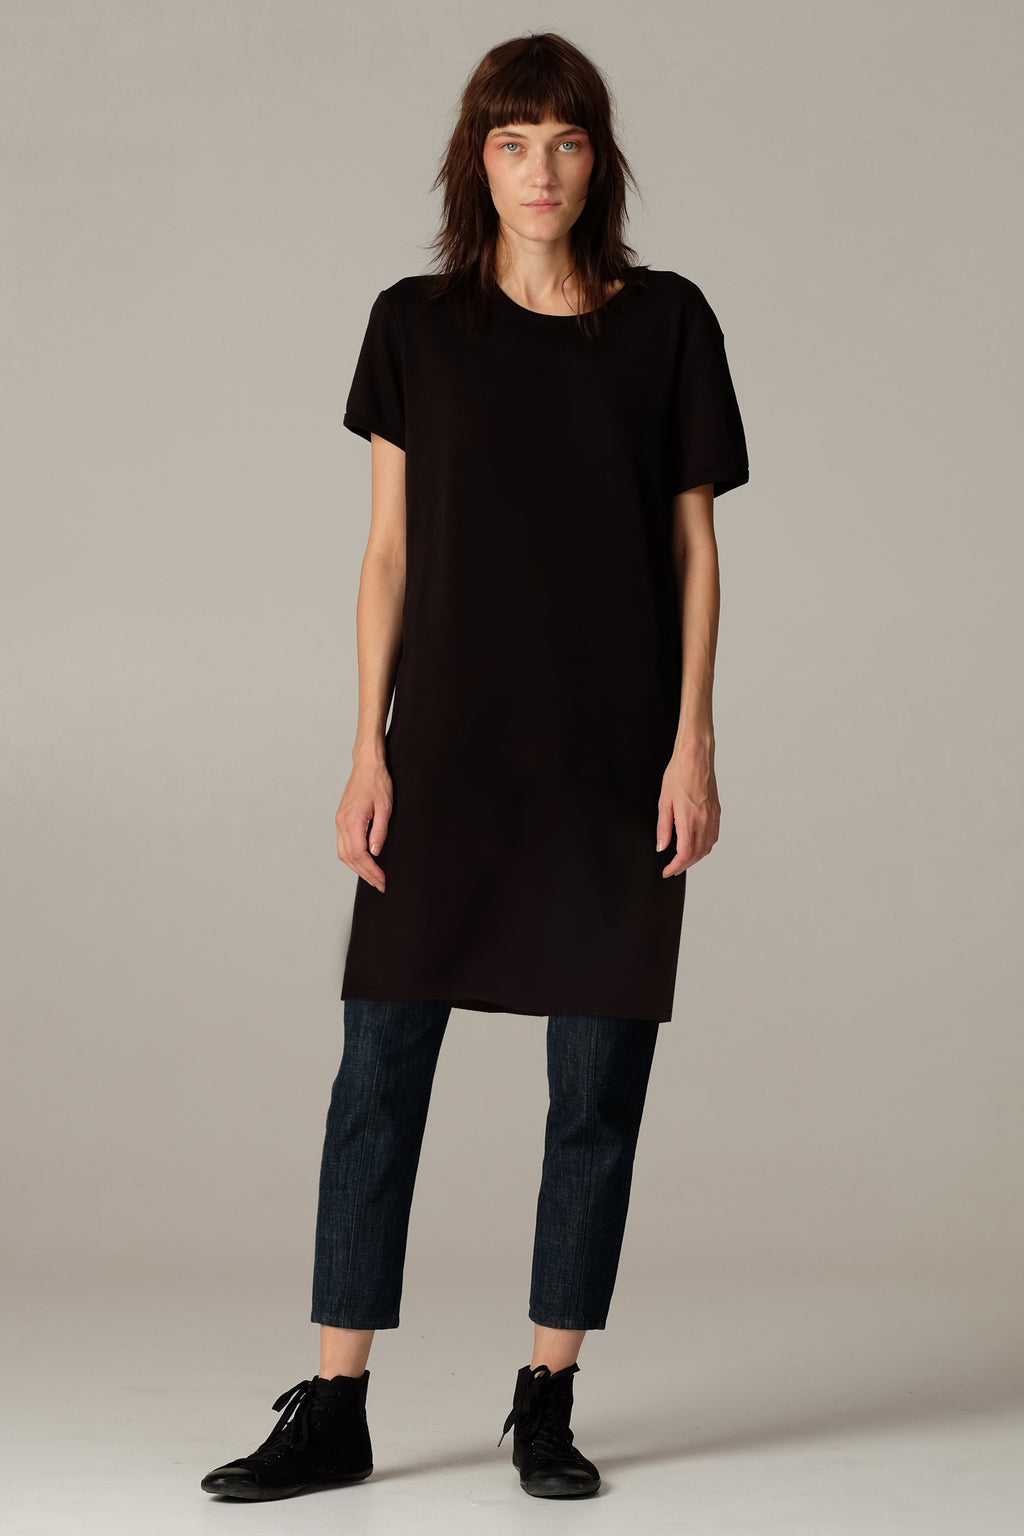 PLAIN T-shirt dress - One Wolf